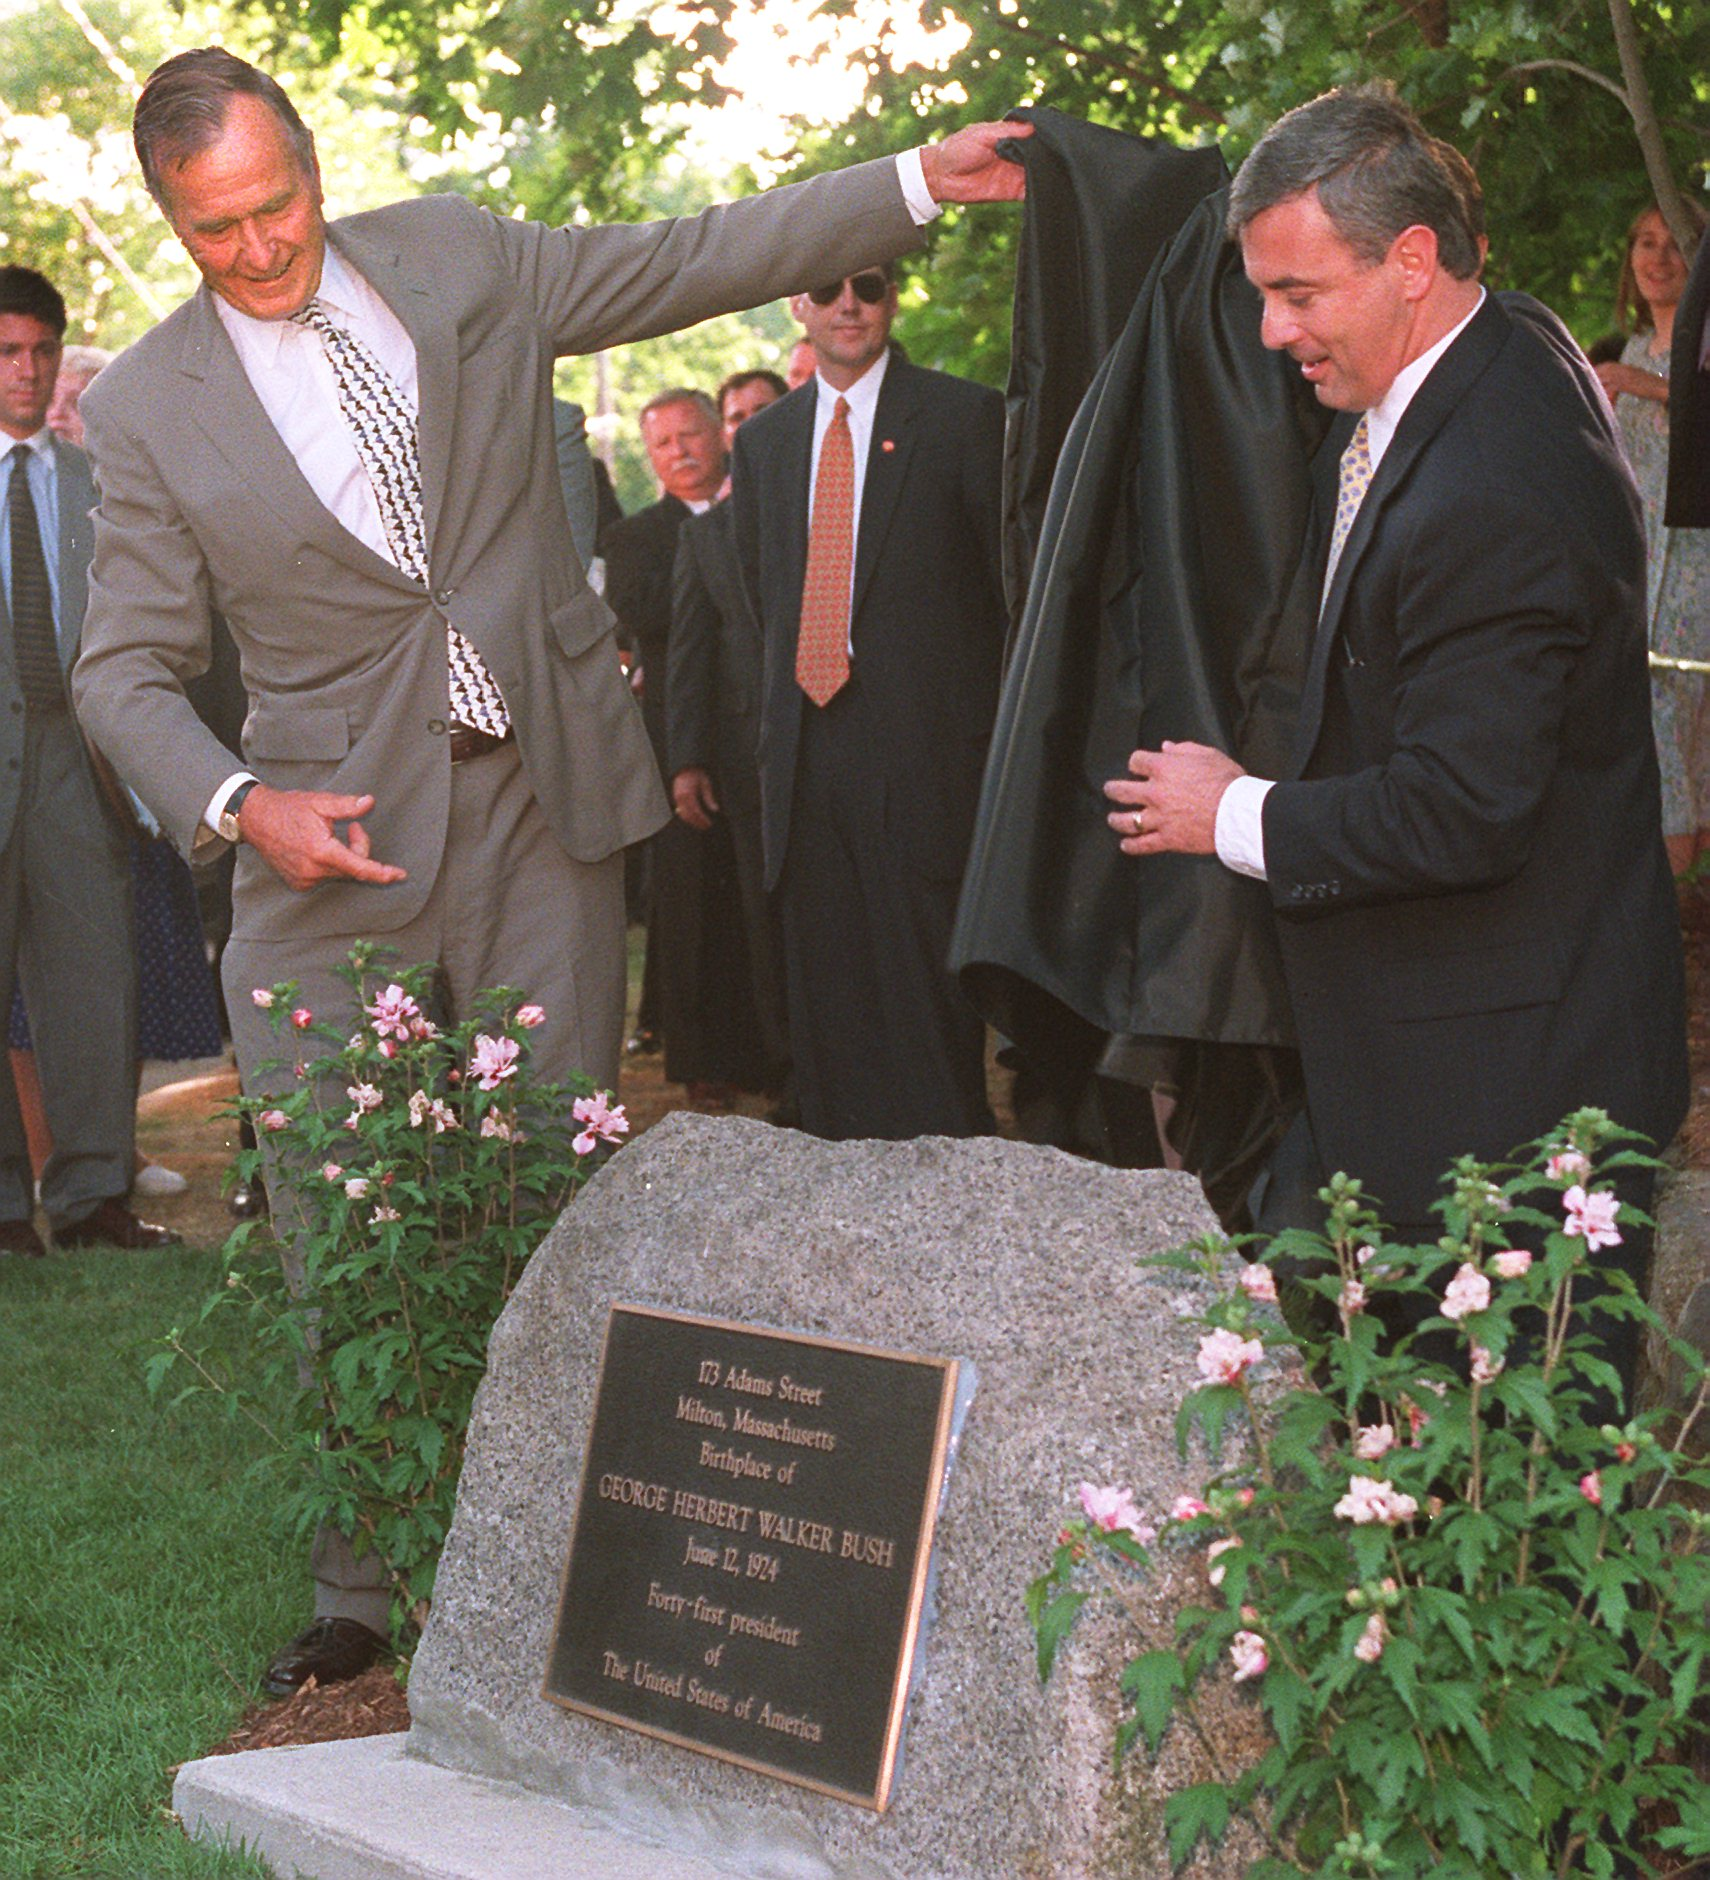 Two men taking a cover off a stone with a plaque on it, and there's a crowd behind them.